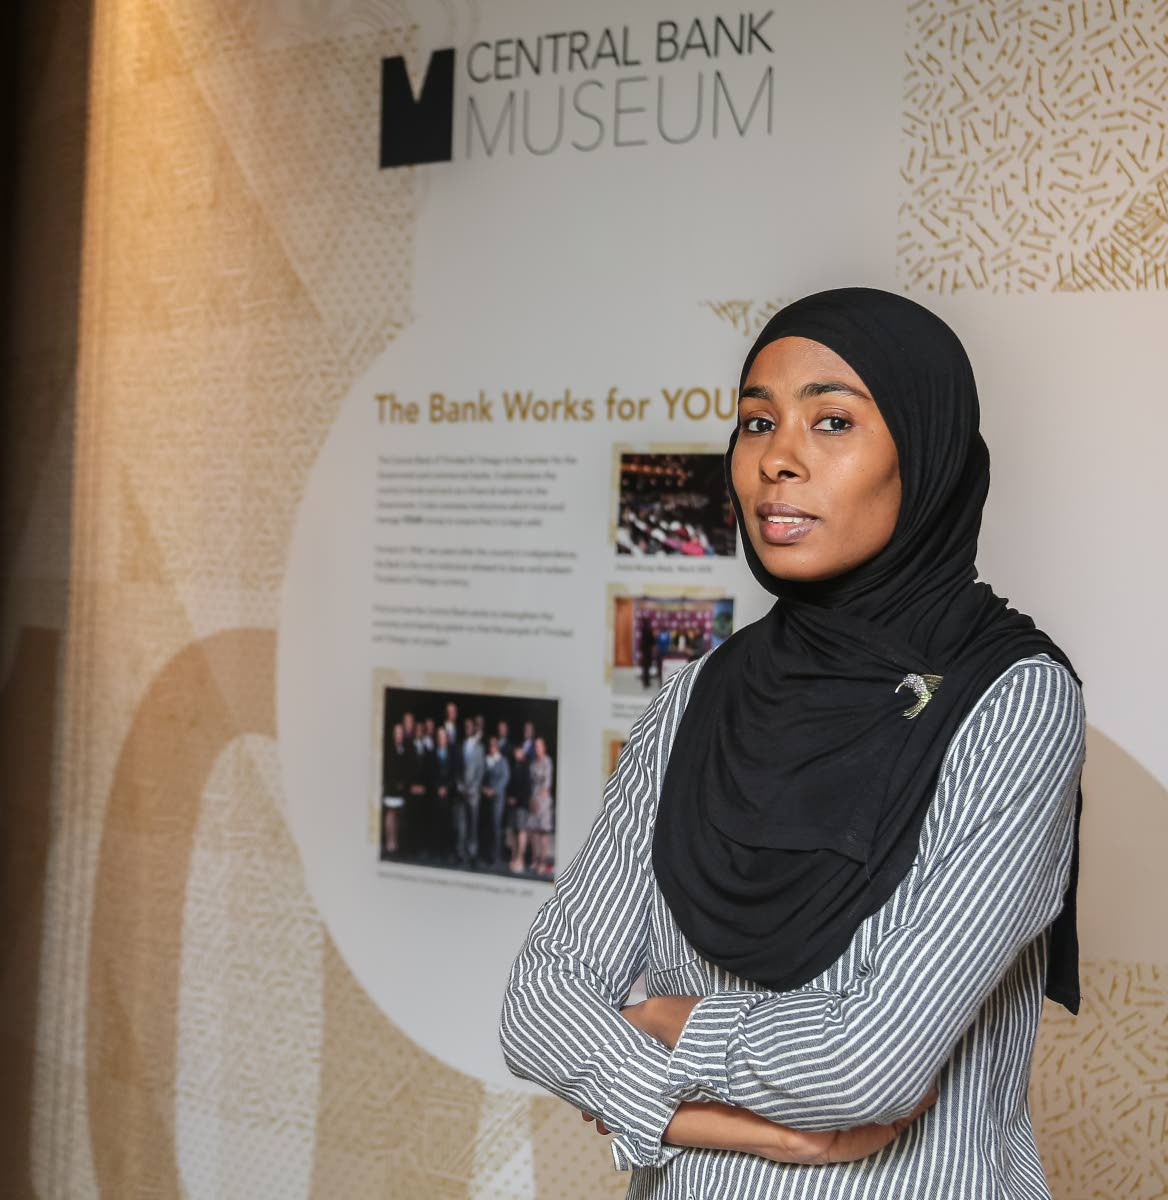 Central Bank museum curator Nimah Muwakil. Photo by Jeff K Mayers